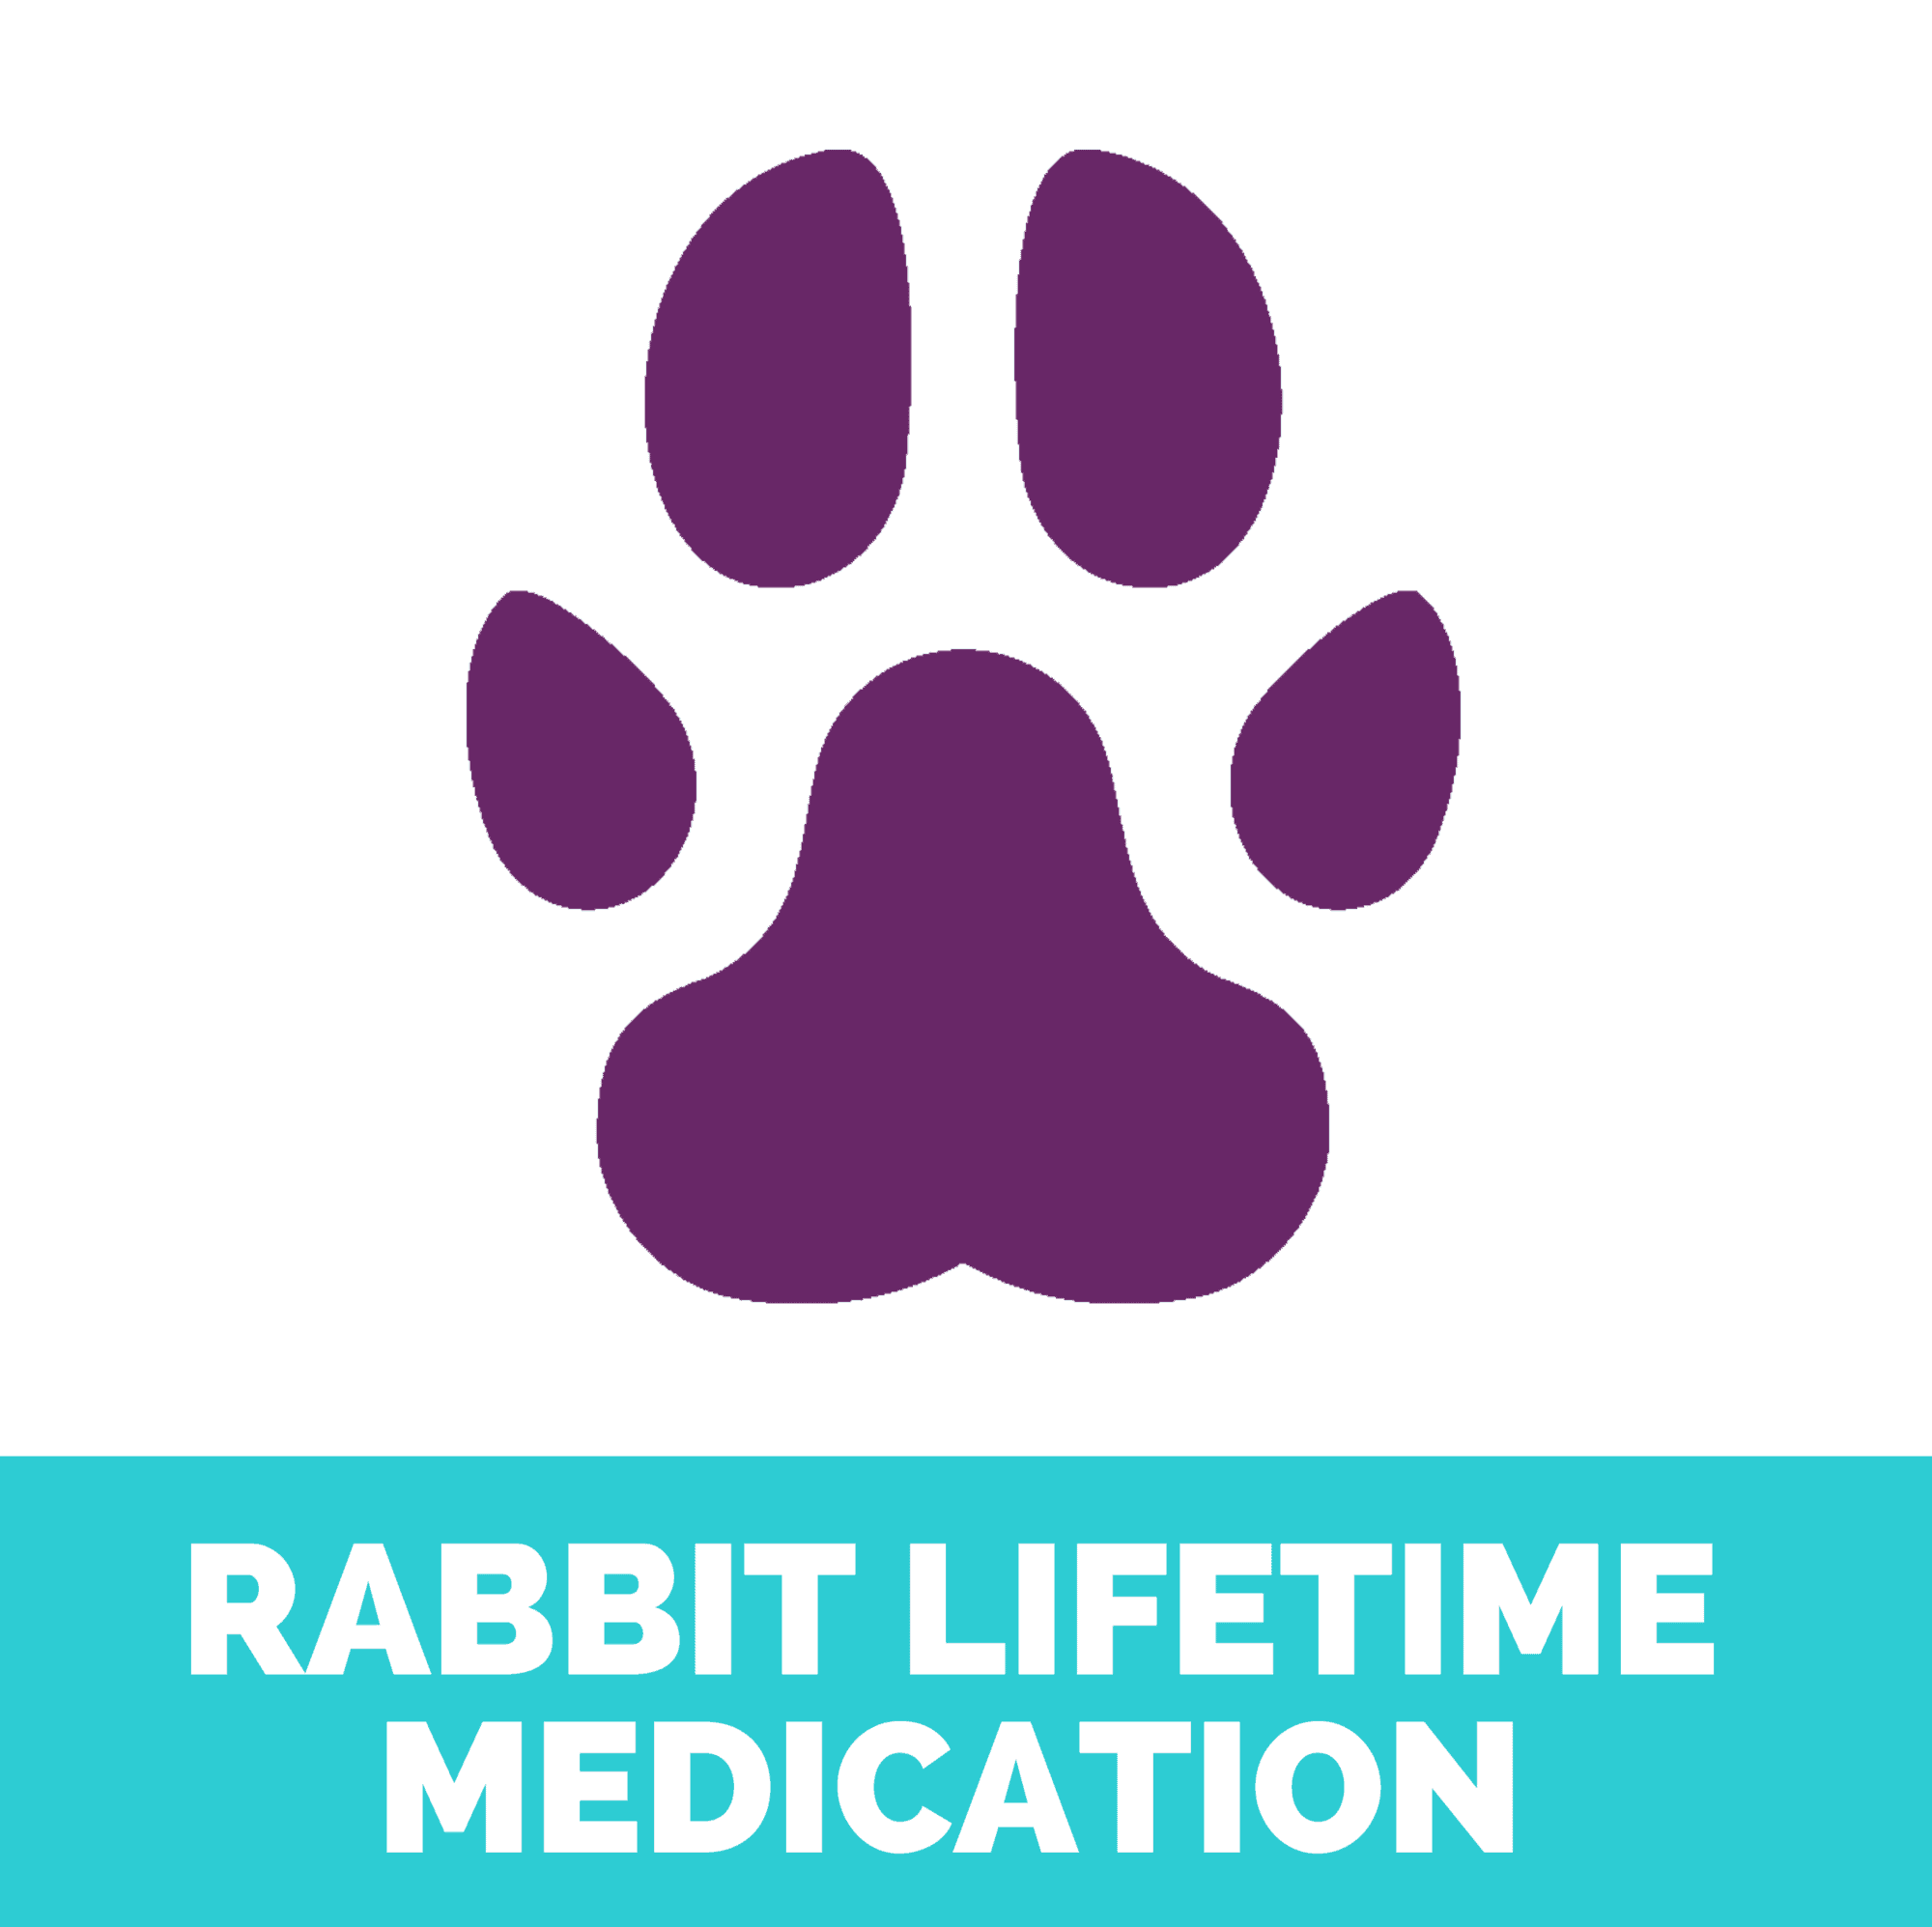 Rabbit lifetime medication